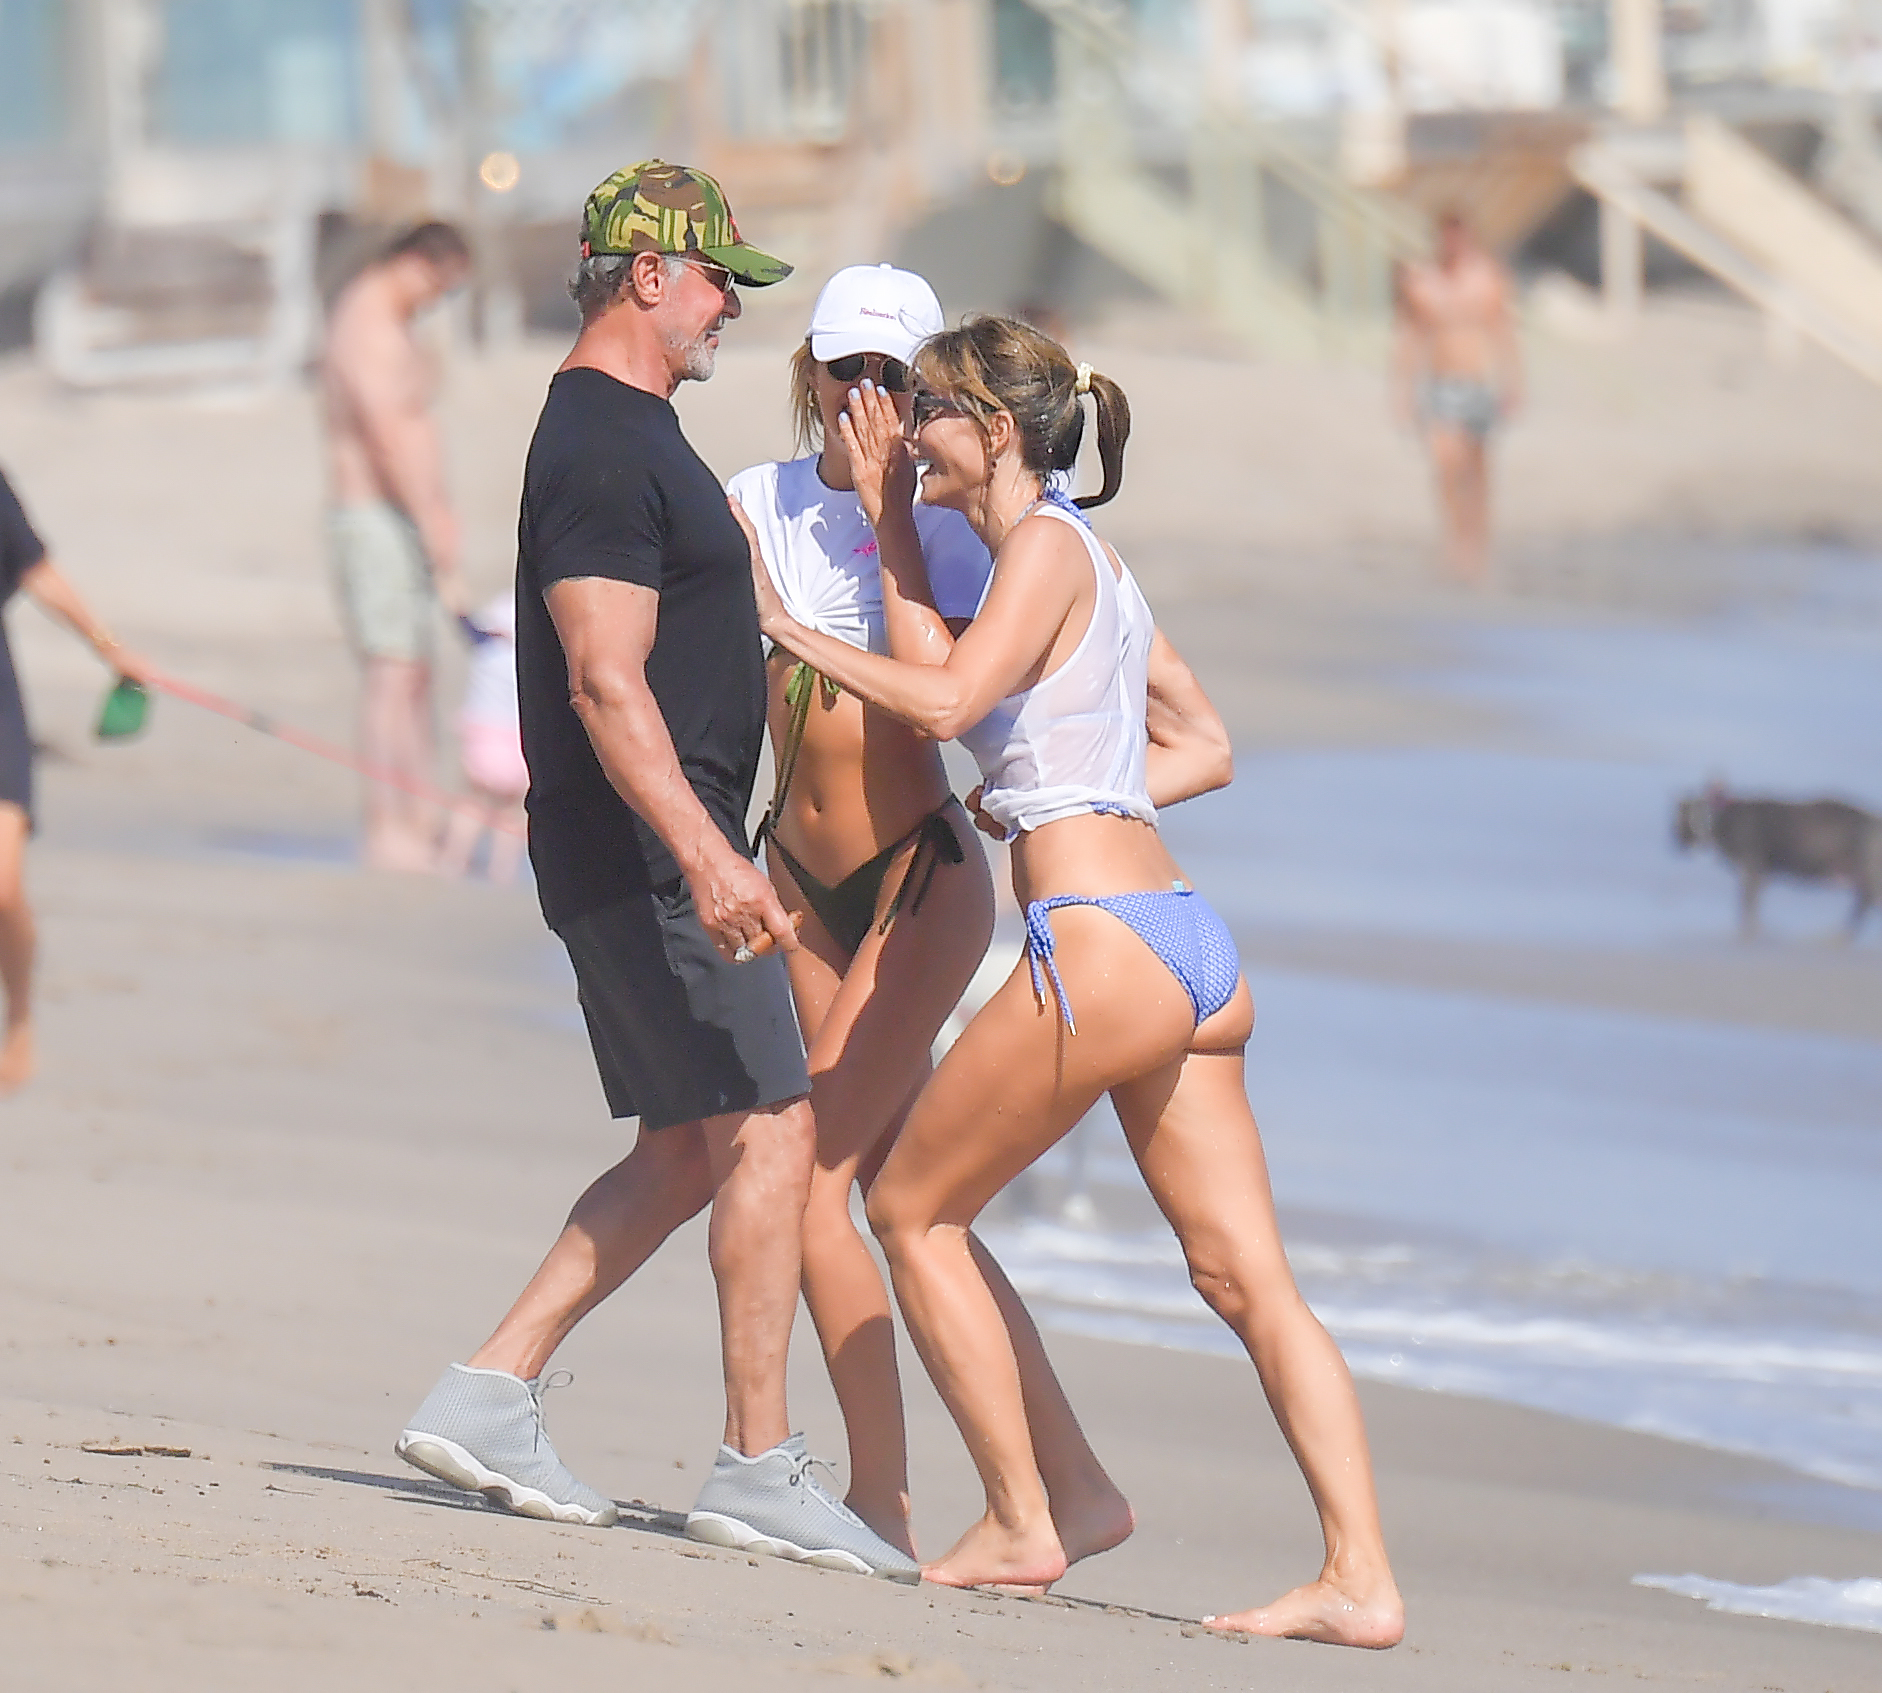 Sylvester Stallone heads to the beach with his daughters Scarlet and Sophia and his wife Jennifer Flavin. Stallone puffed on a cigar and kept his feet wet as he had a great time in Malibu. 15 Aug 2020,Image: 552807140, License: Rights-managed, Restrictions: World Rights, Model Release: no, Credit line: Snorlax / MEGA / The Mega Agency / Profimedia